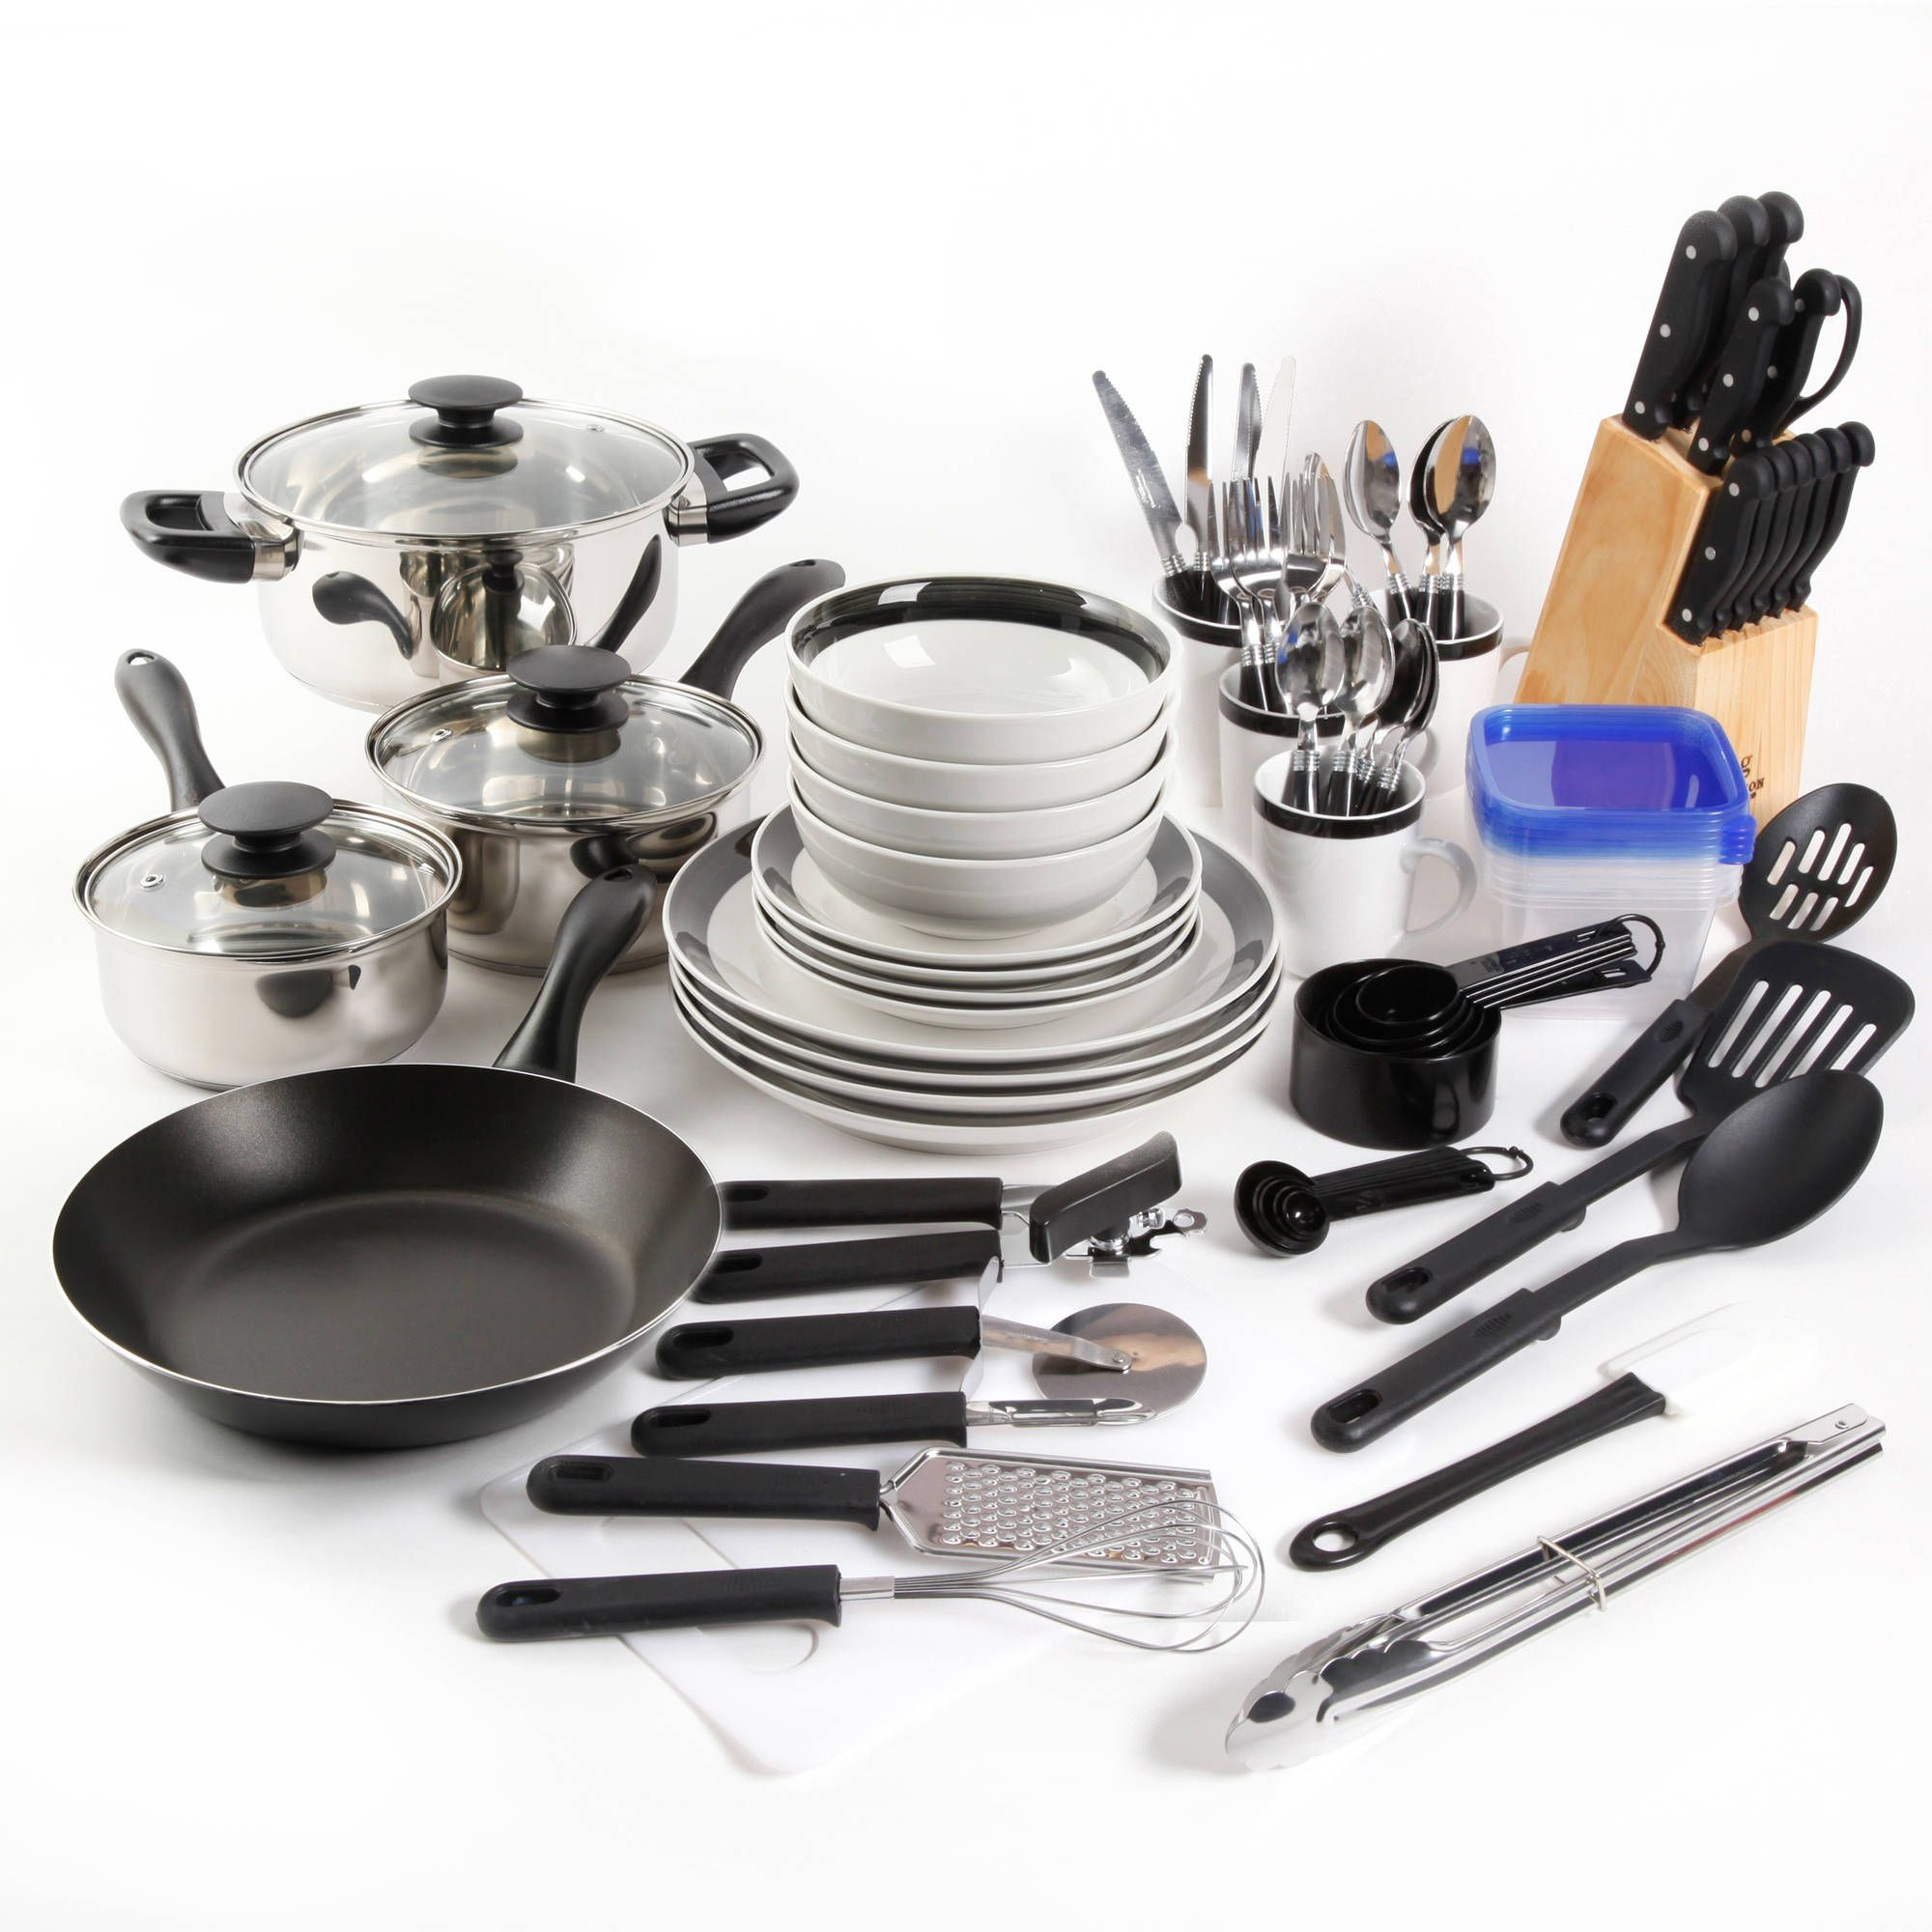 Kitchen Starter Set Ikea - All About Kitchen Set